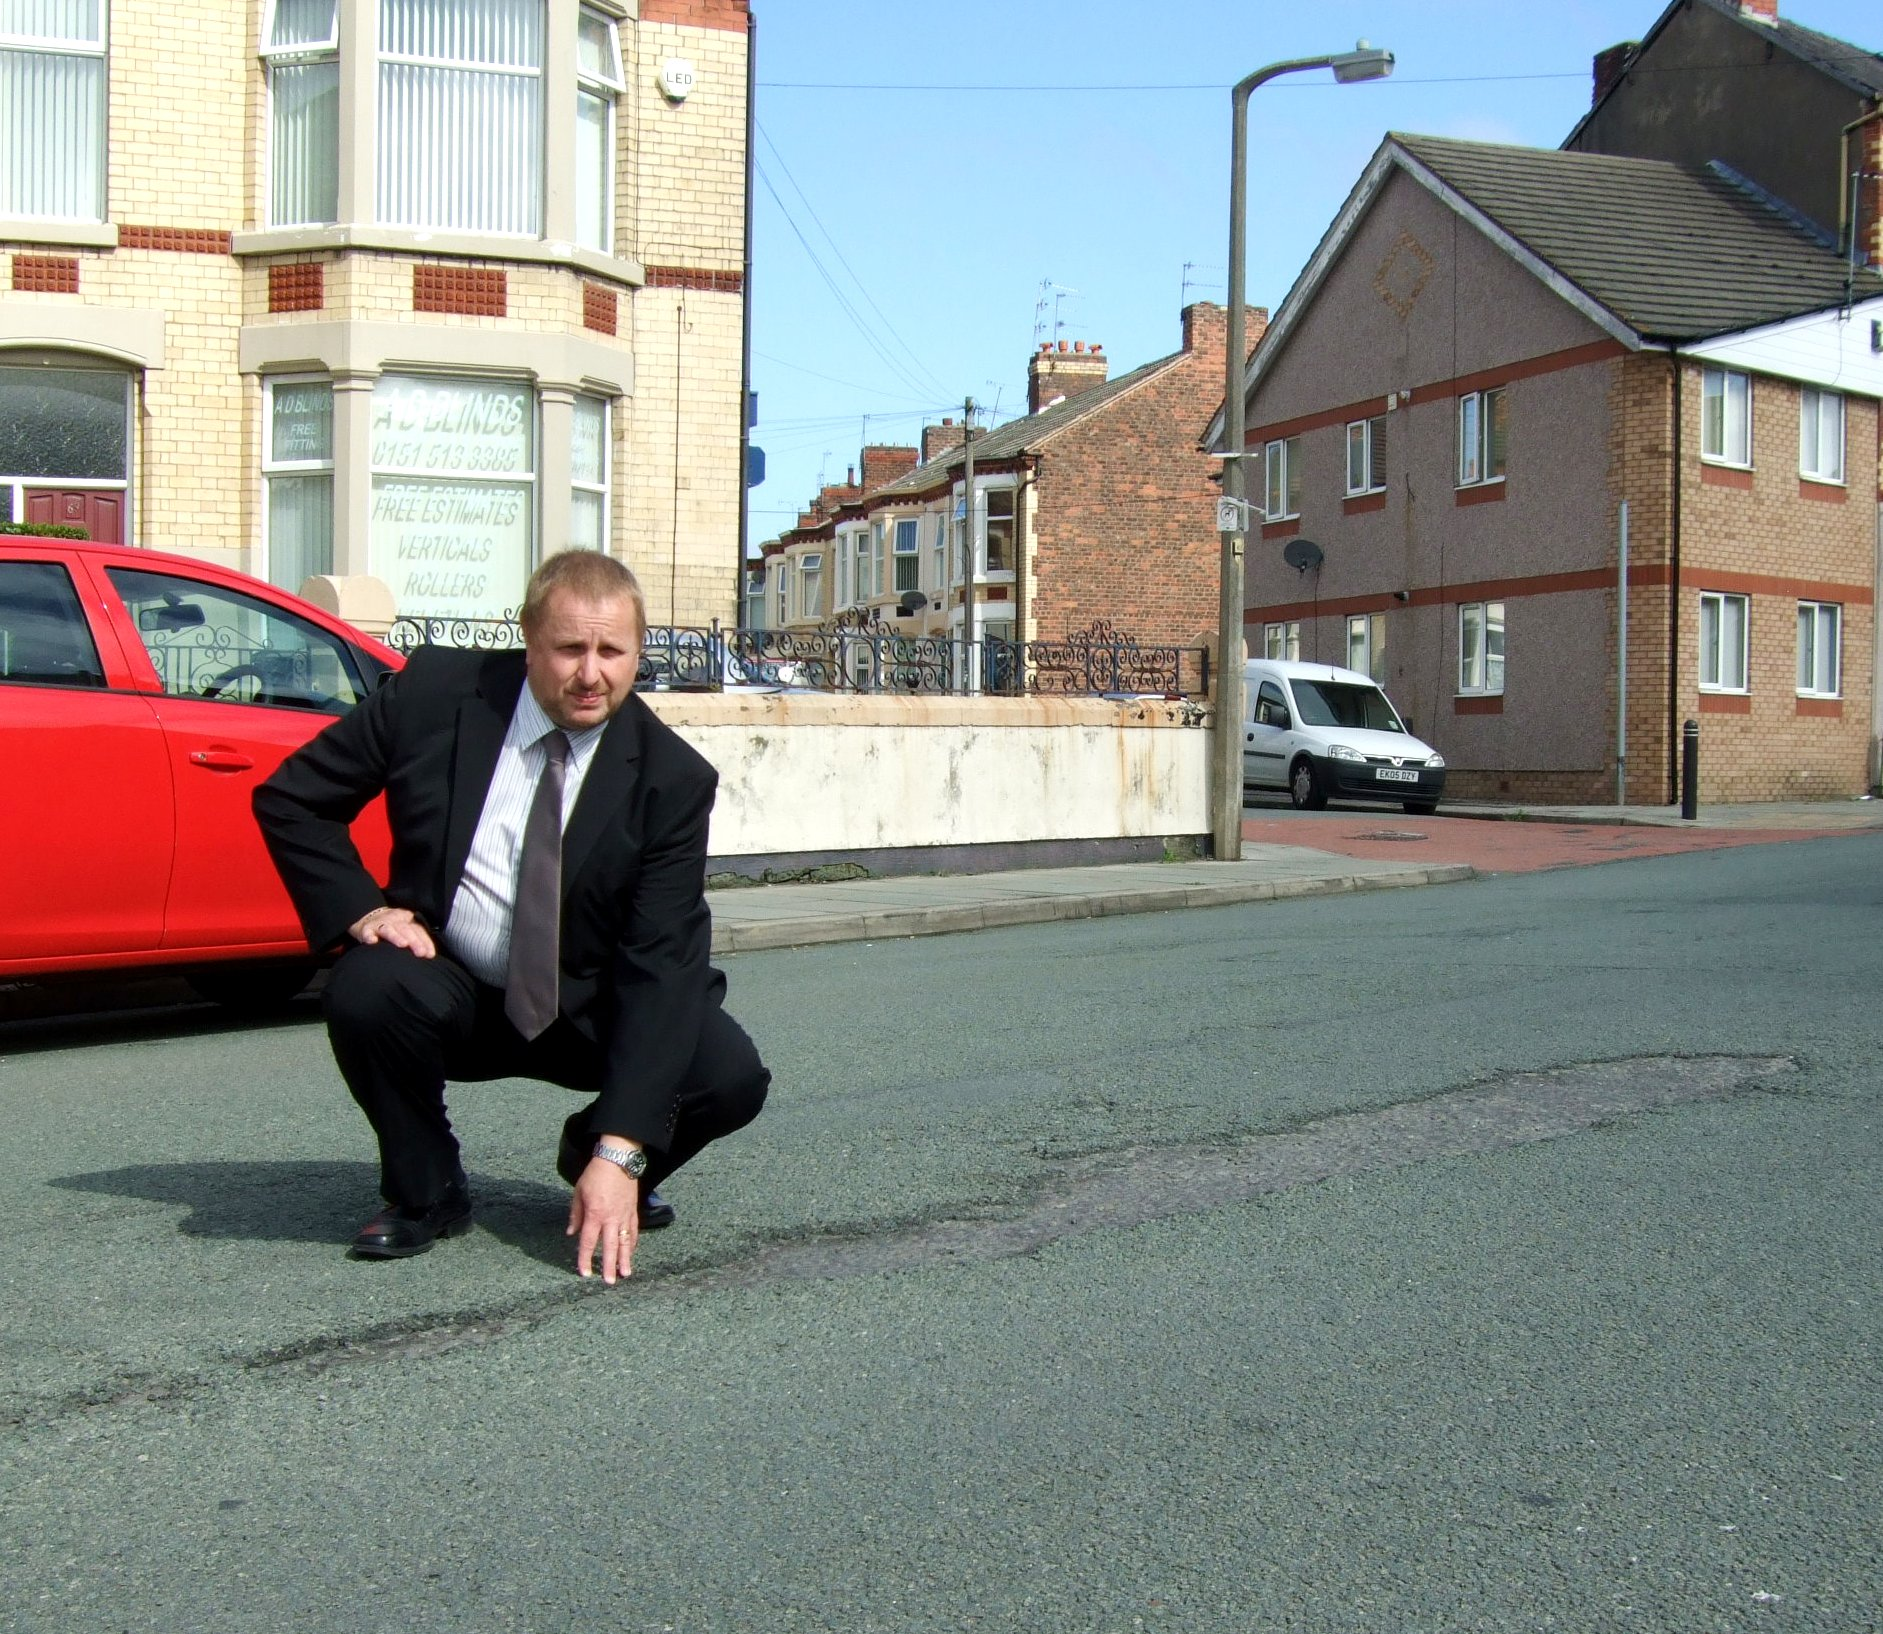 Cllr Stuart Whittingham checking out some of the potholes on Martins Lane, Liscard, which will be repaired soon thanks for the additional funding.